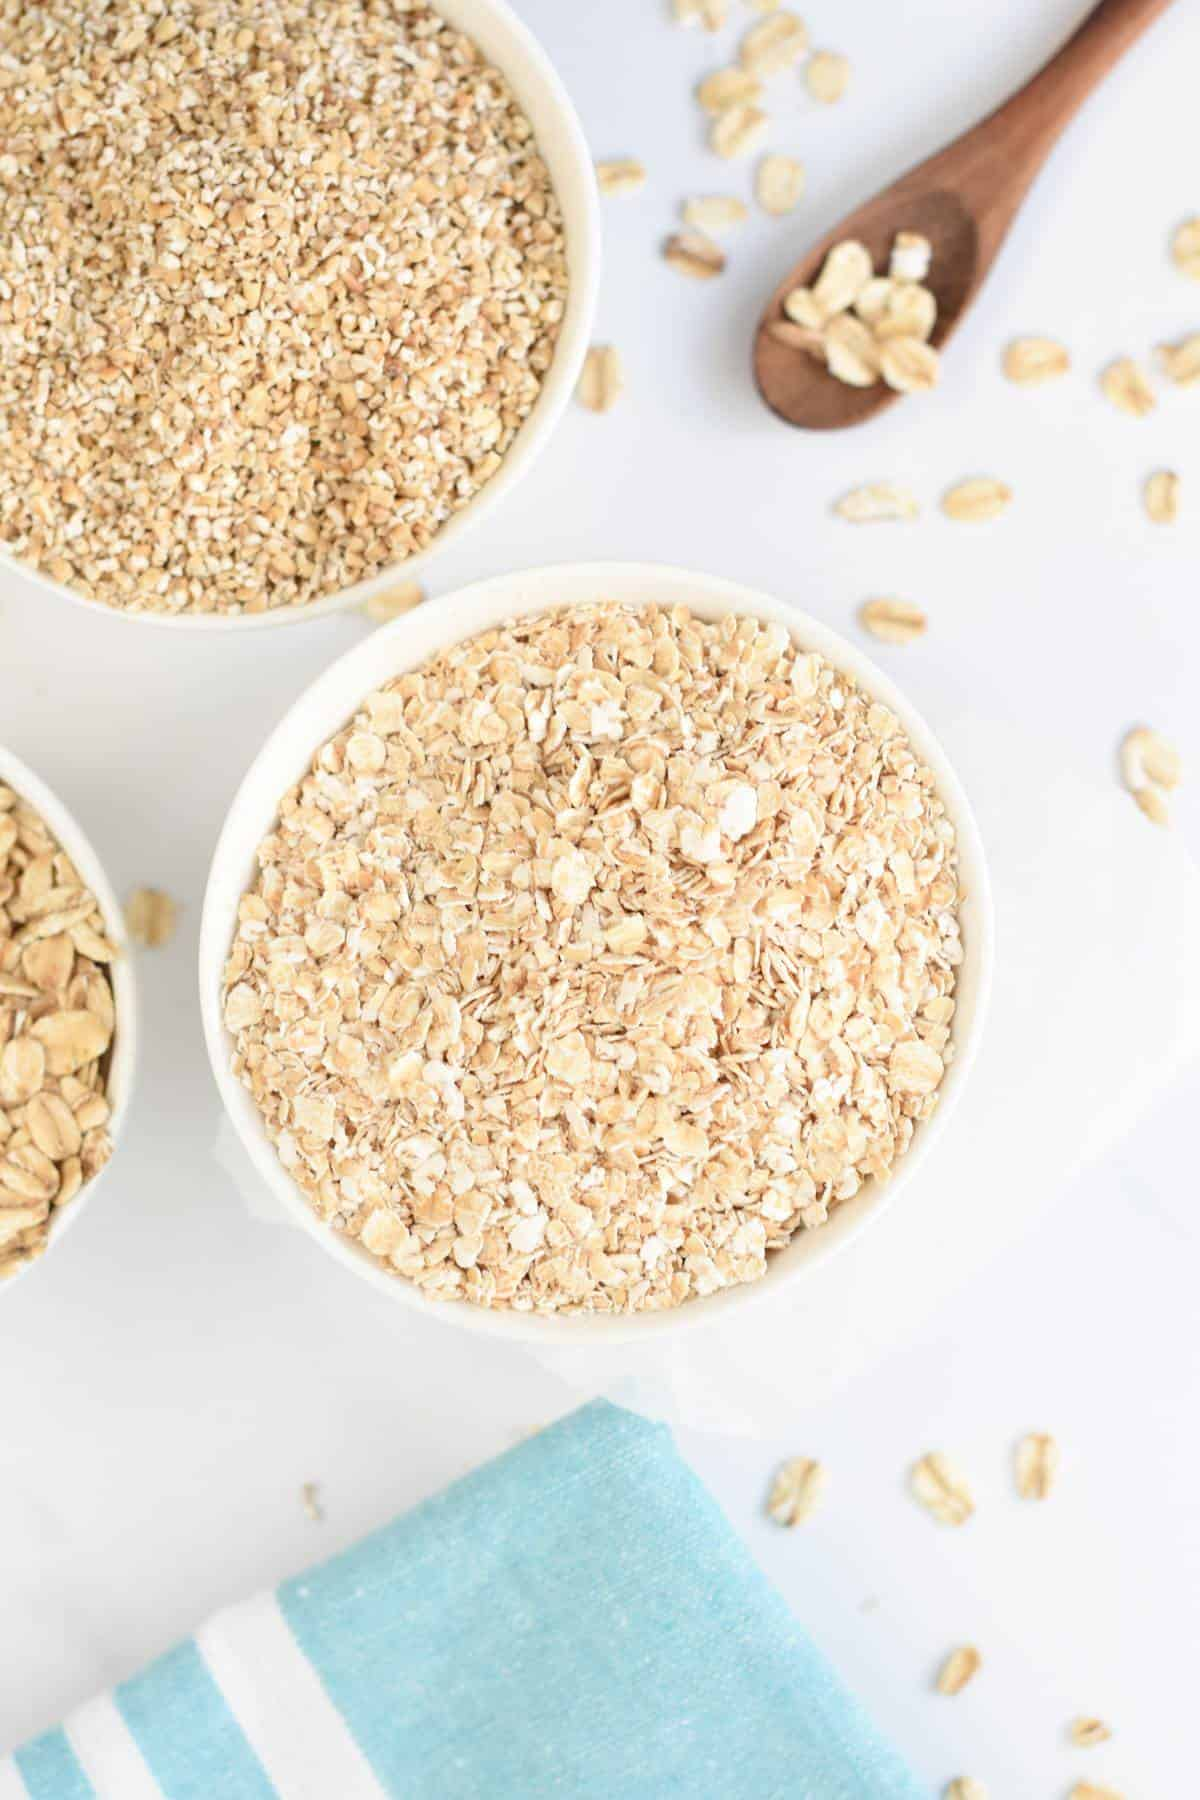 What's quick cooking oats